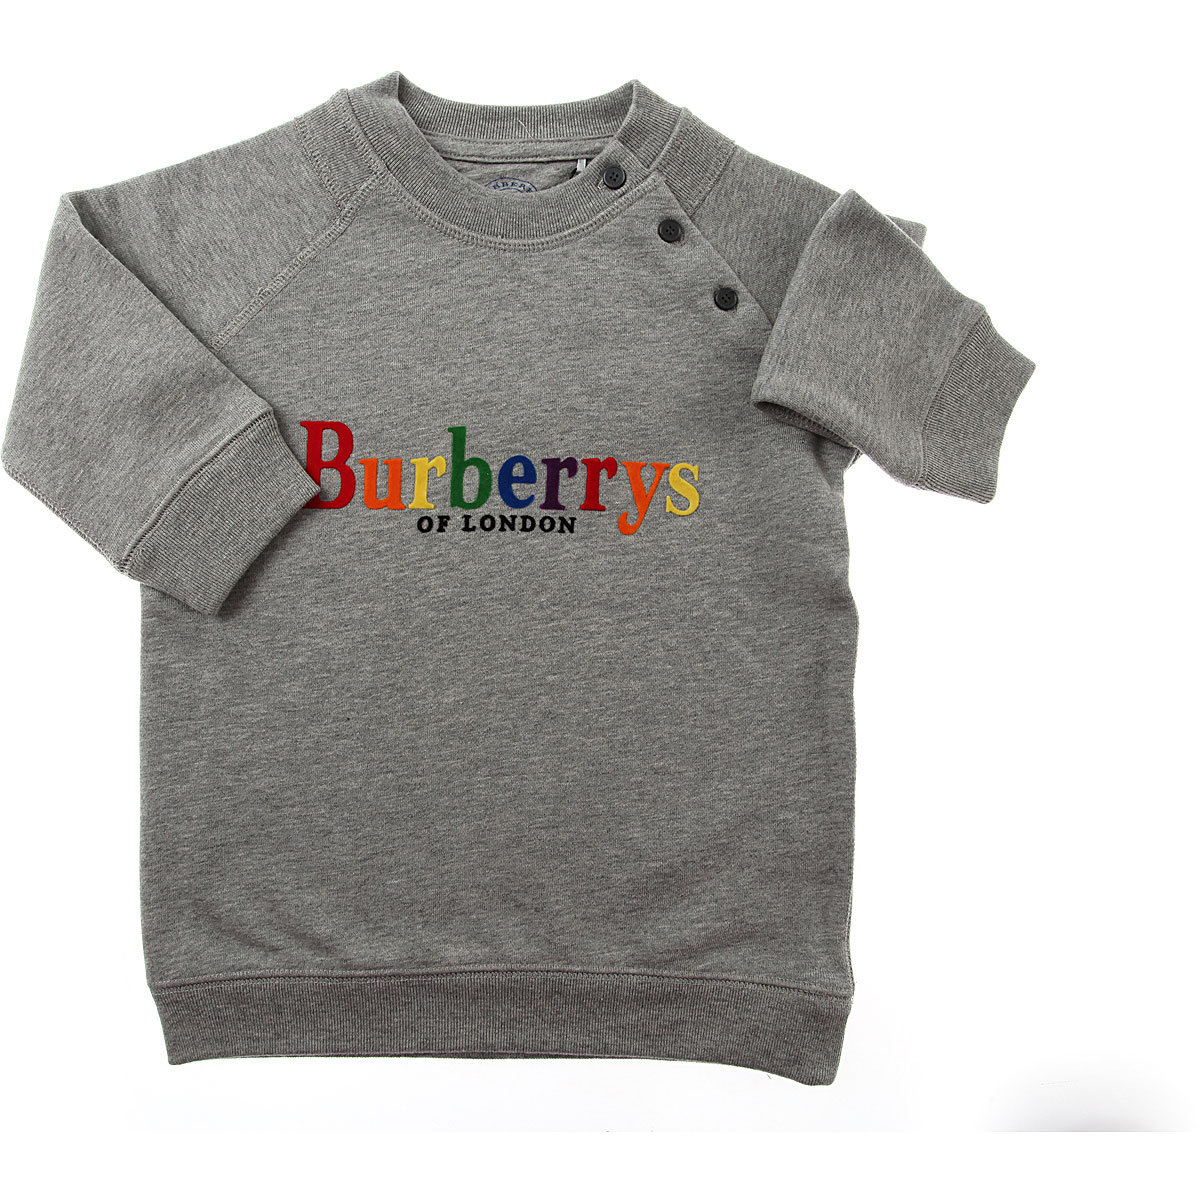 Burberry Baby Dress for Girls On Sale in Outlet, Grey, Cotton, 2019, 12M 2Y 6M